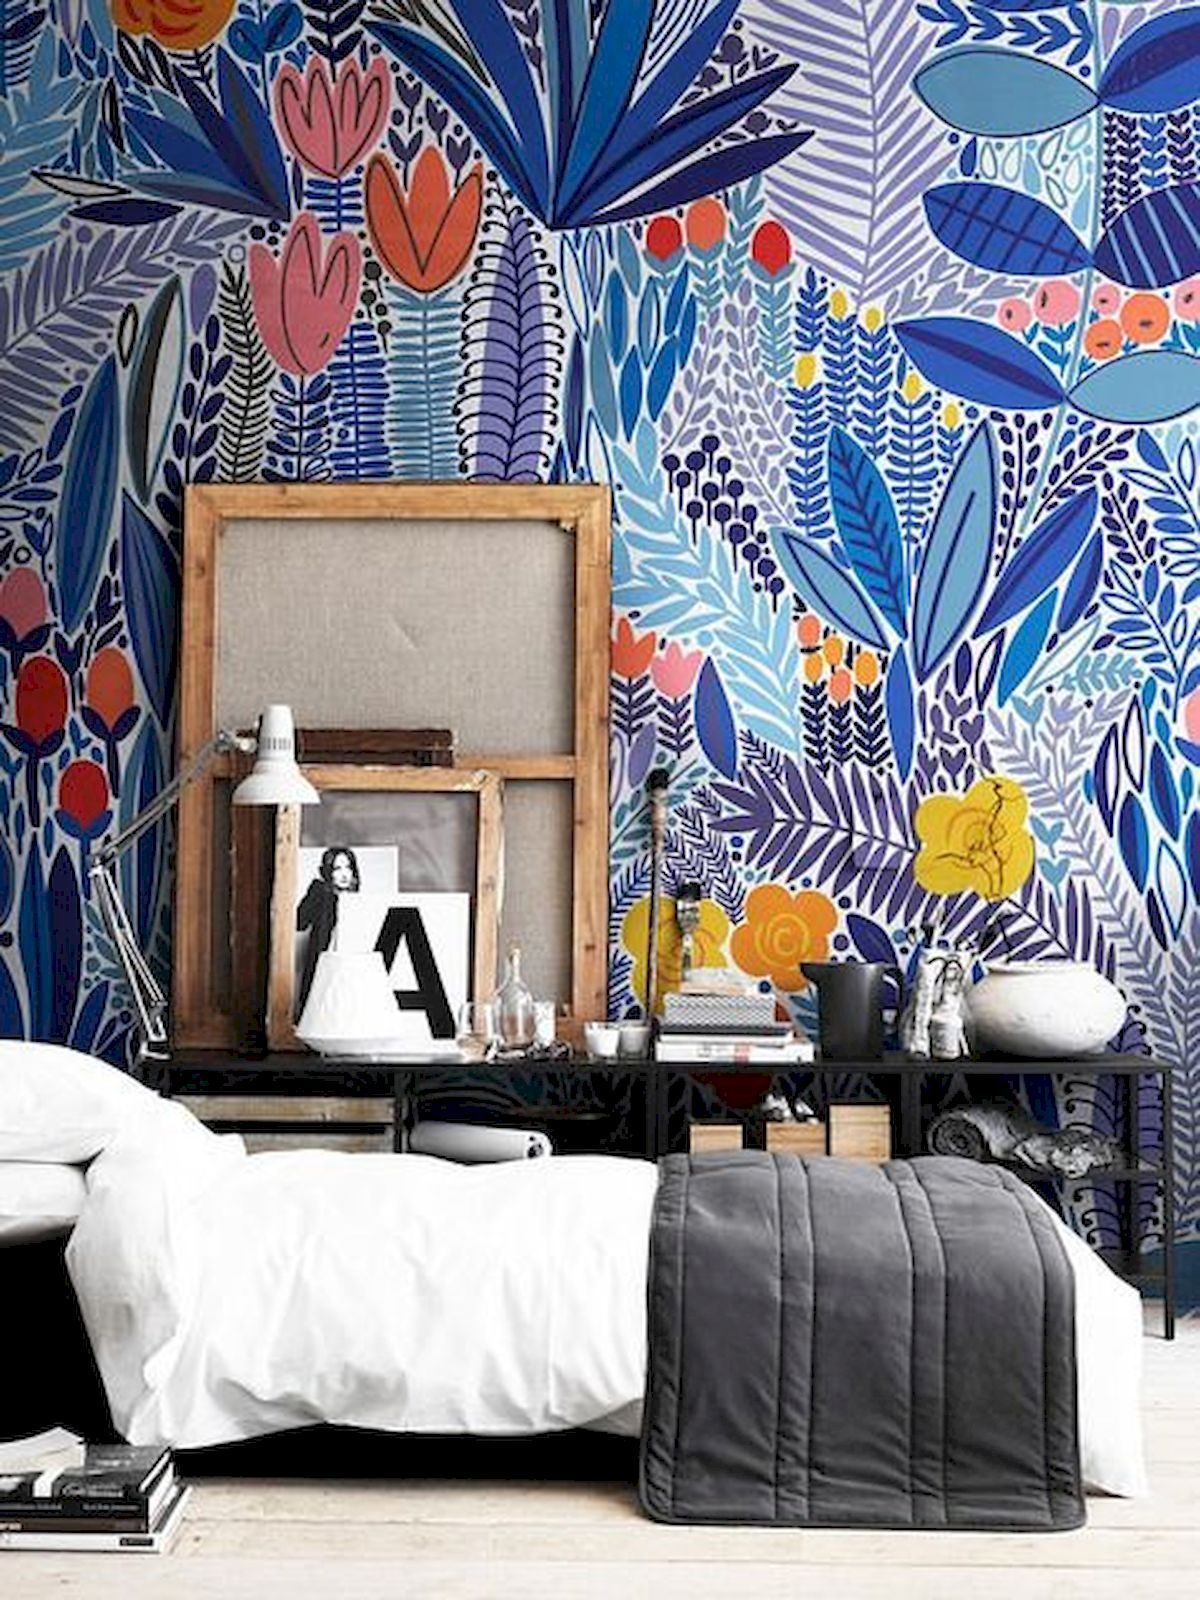 The Best Choice Of Wall Decoration For Bedrooms